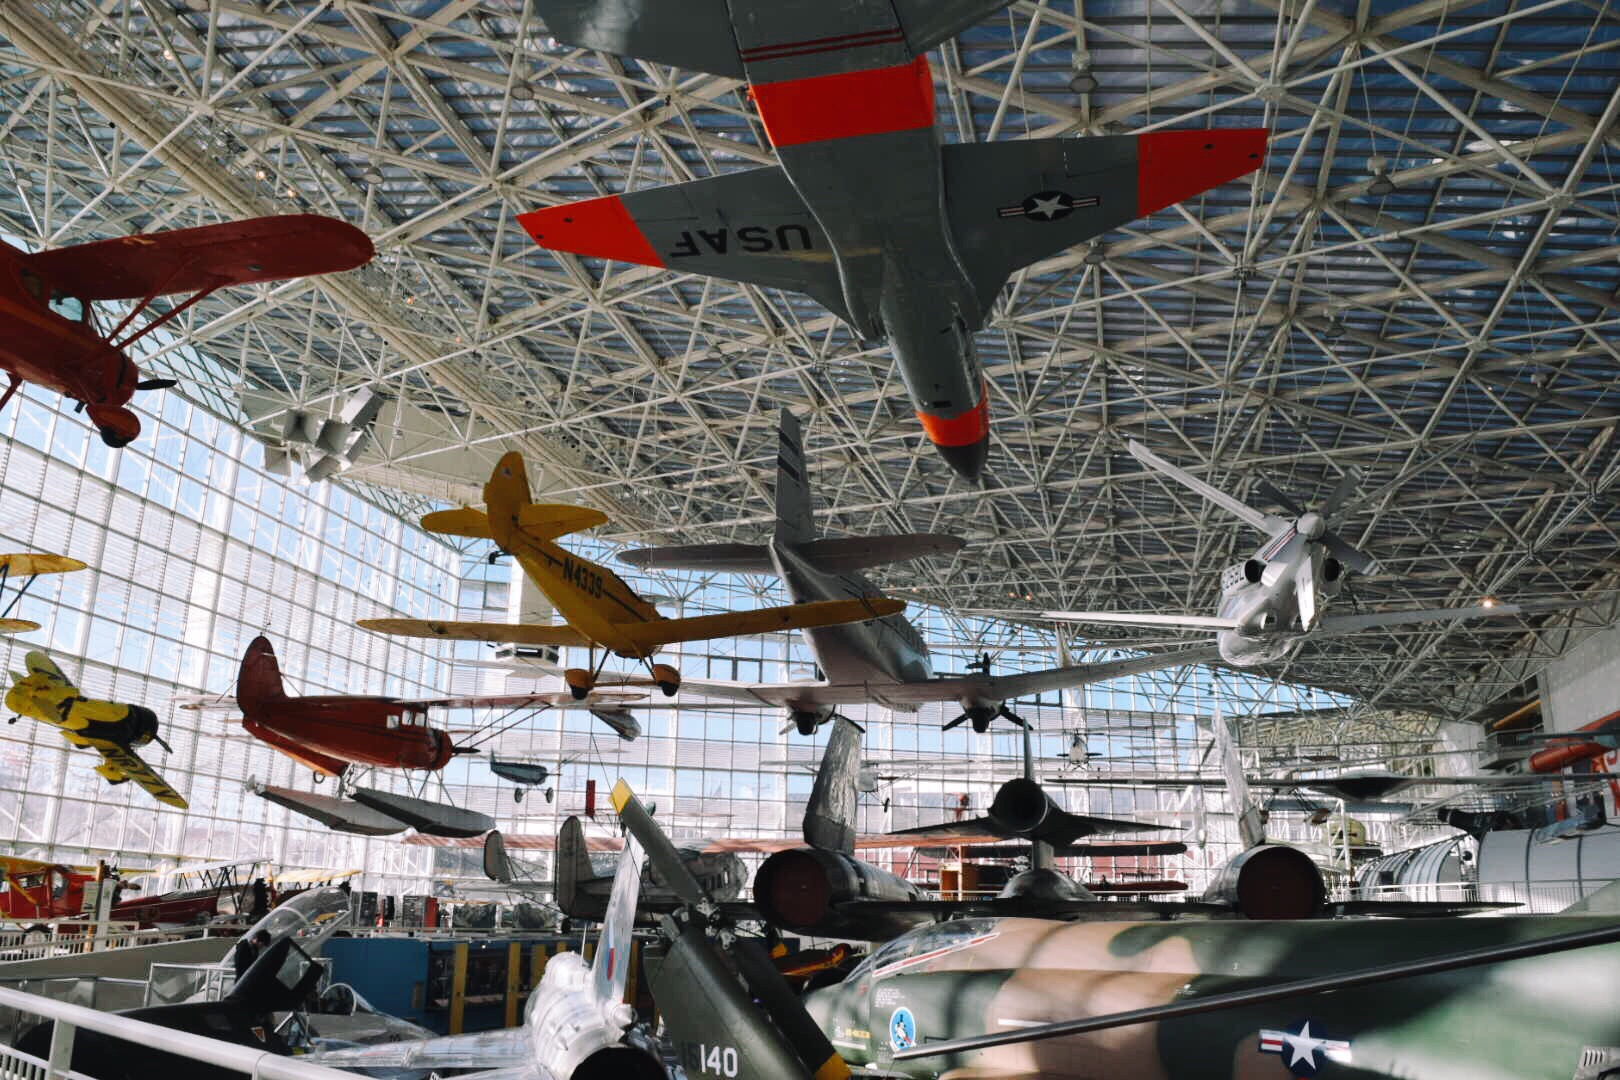 Museum of Flight!